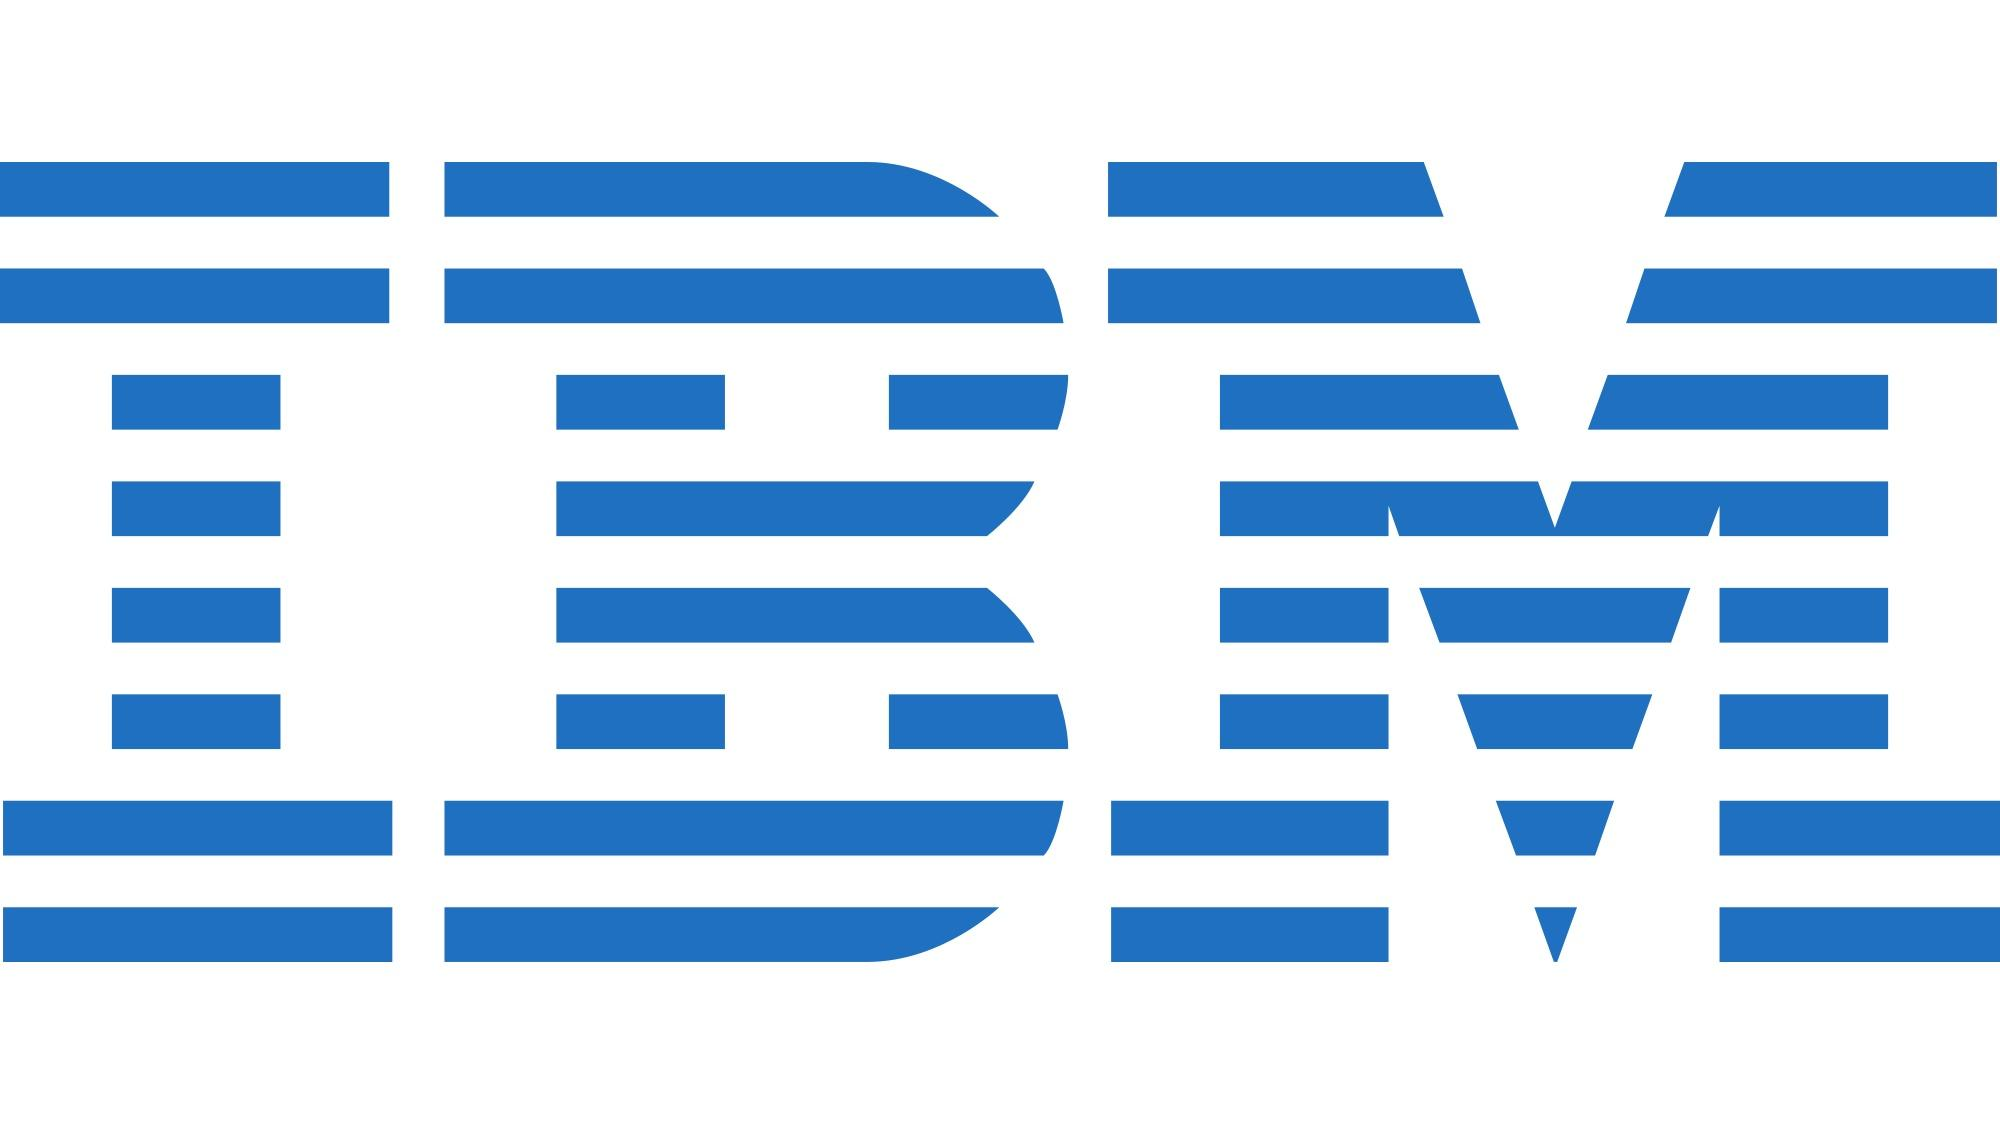 IBM: A Worse Quarter Than It Initially Appears